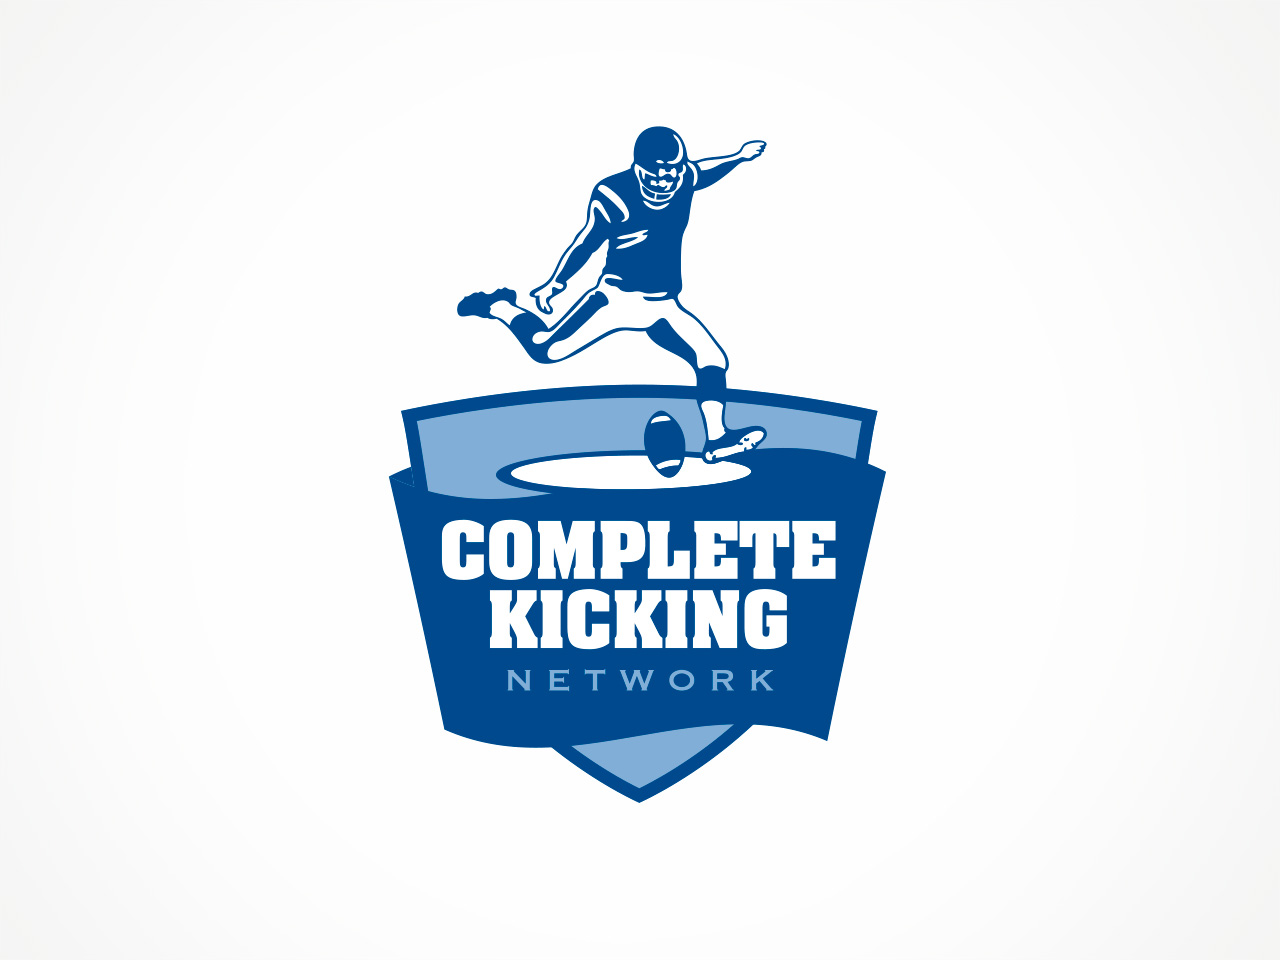 Complete Kicking Network logo